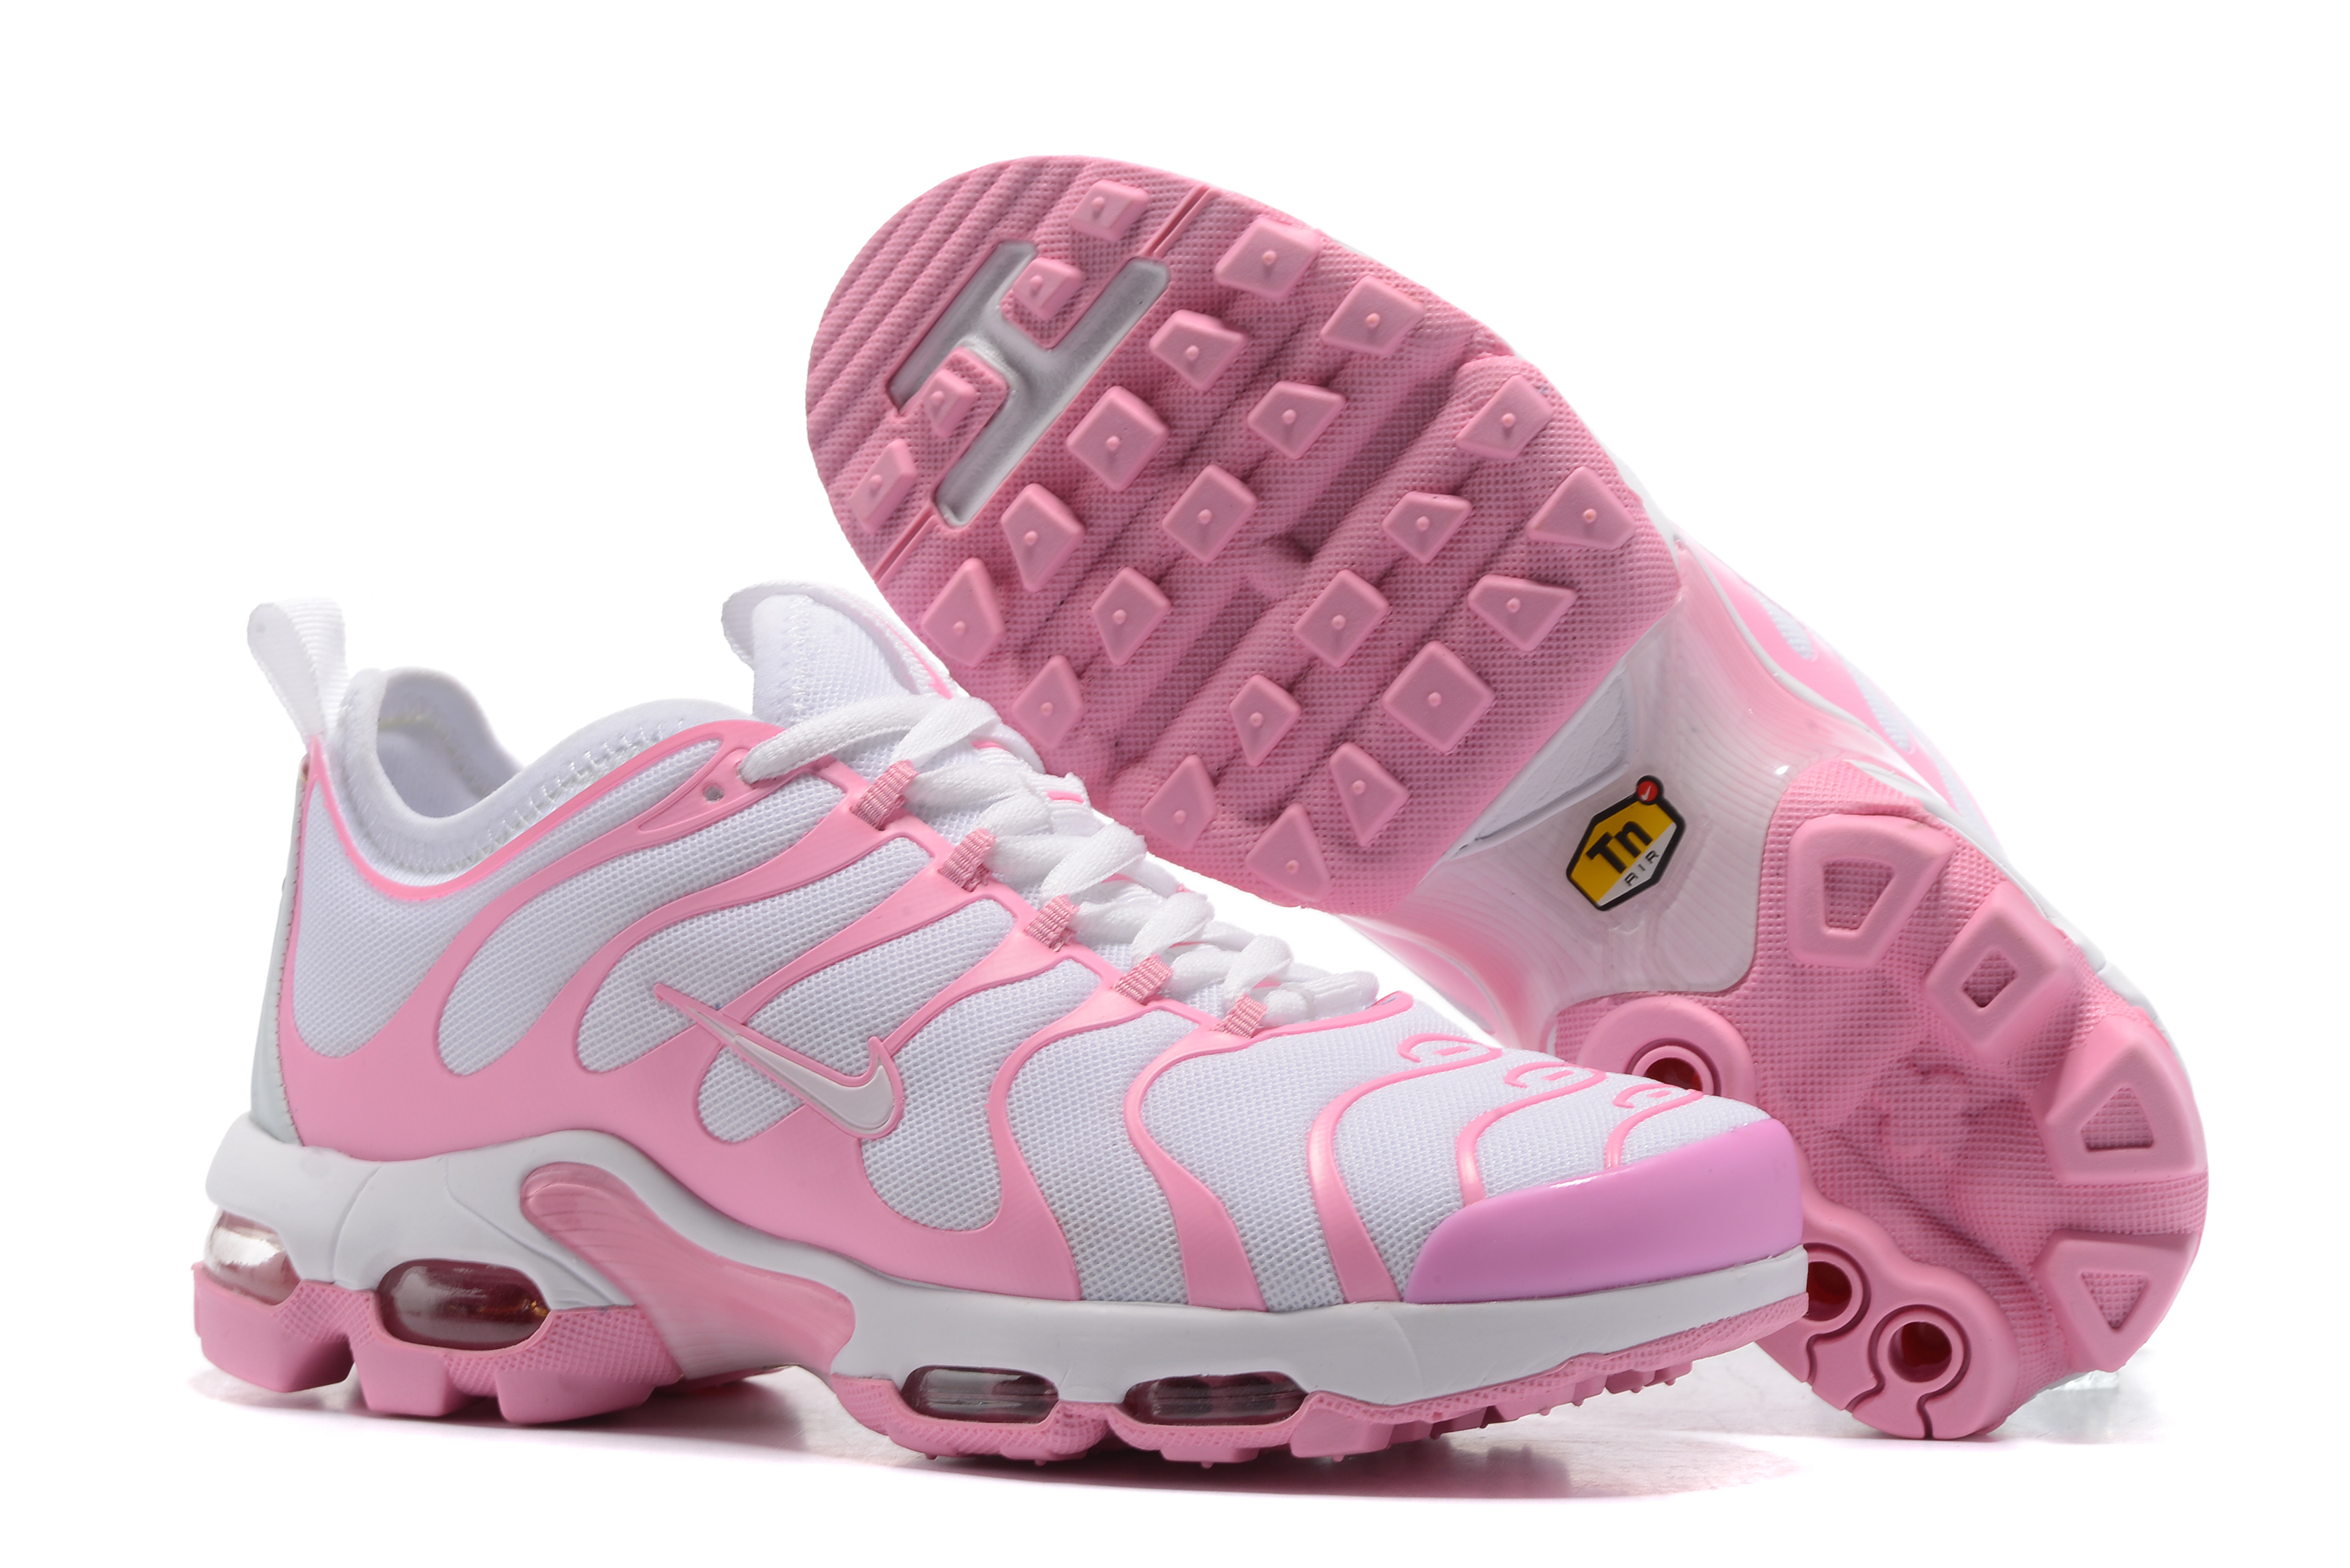 Nike Air Max Plus TN White Pink Shoes